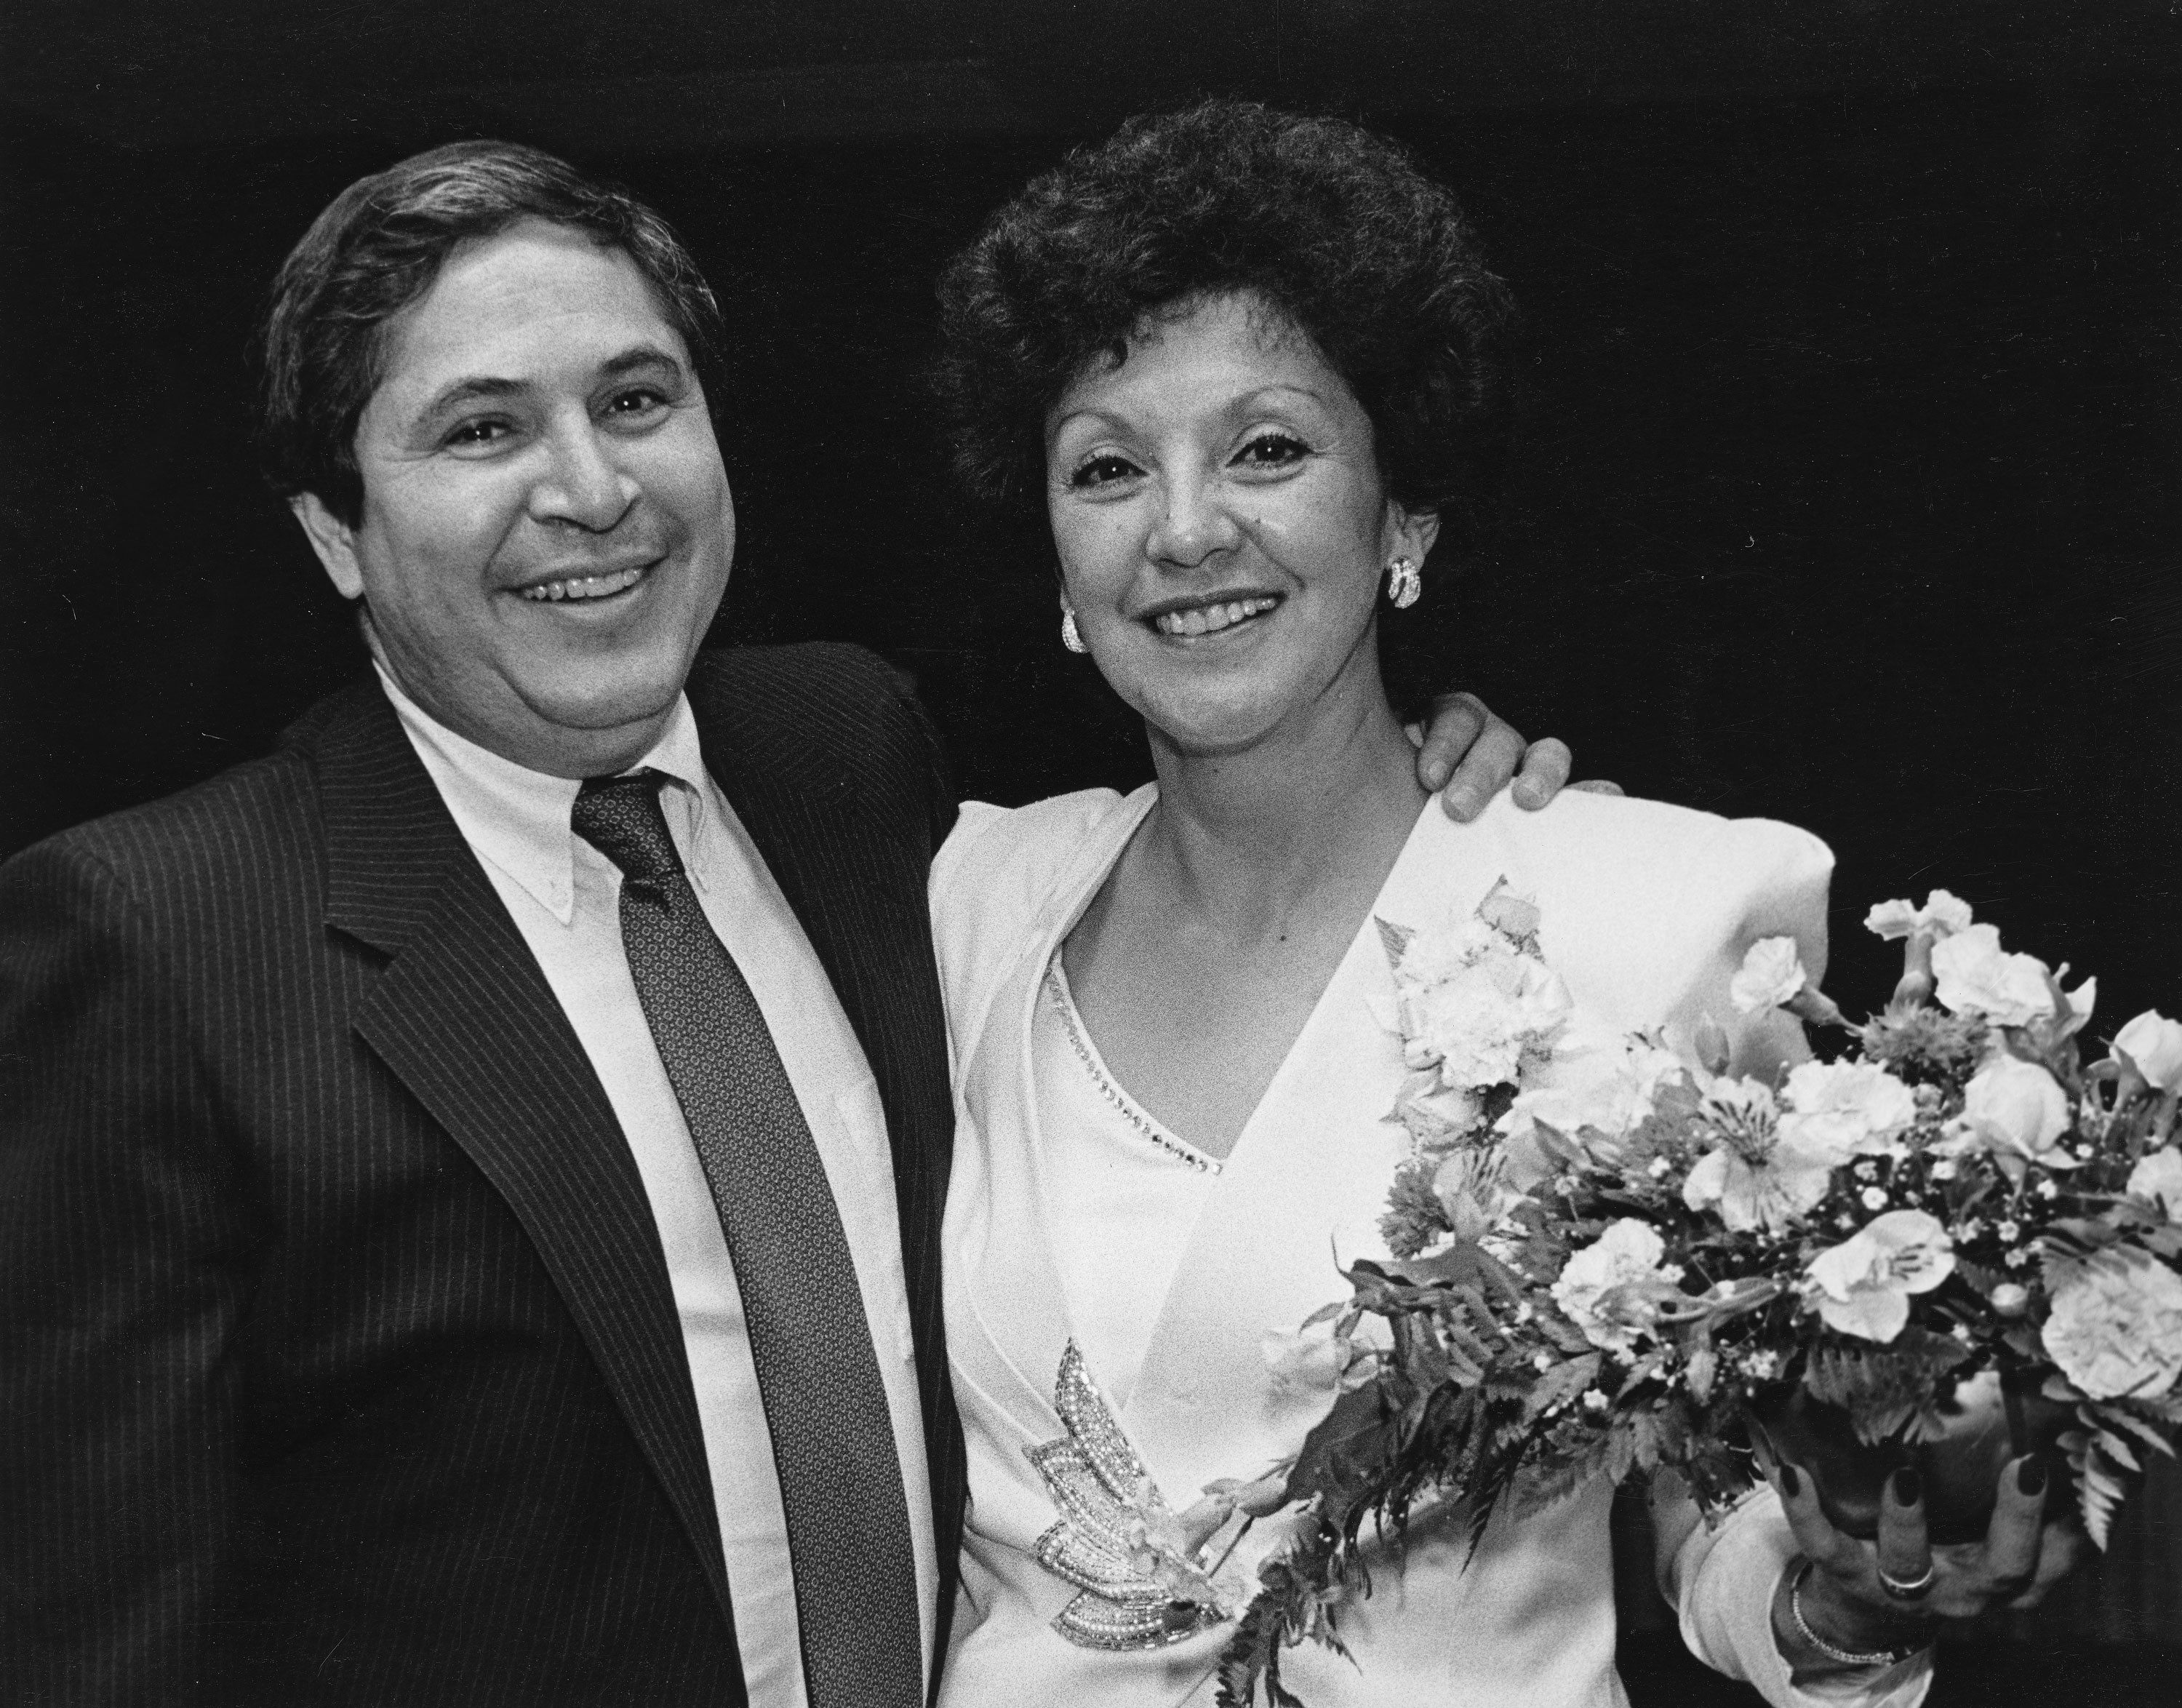 Richard and Virginia Castro